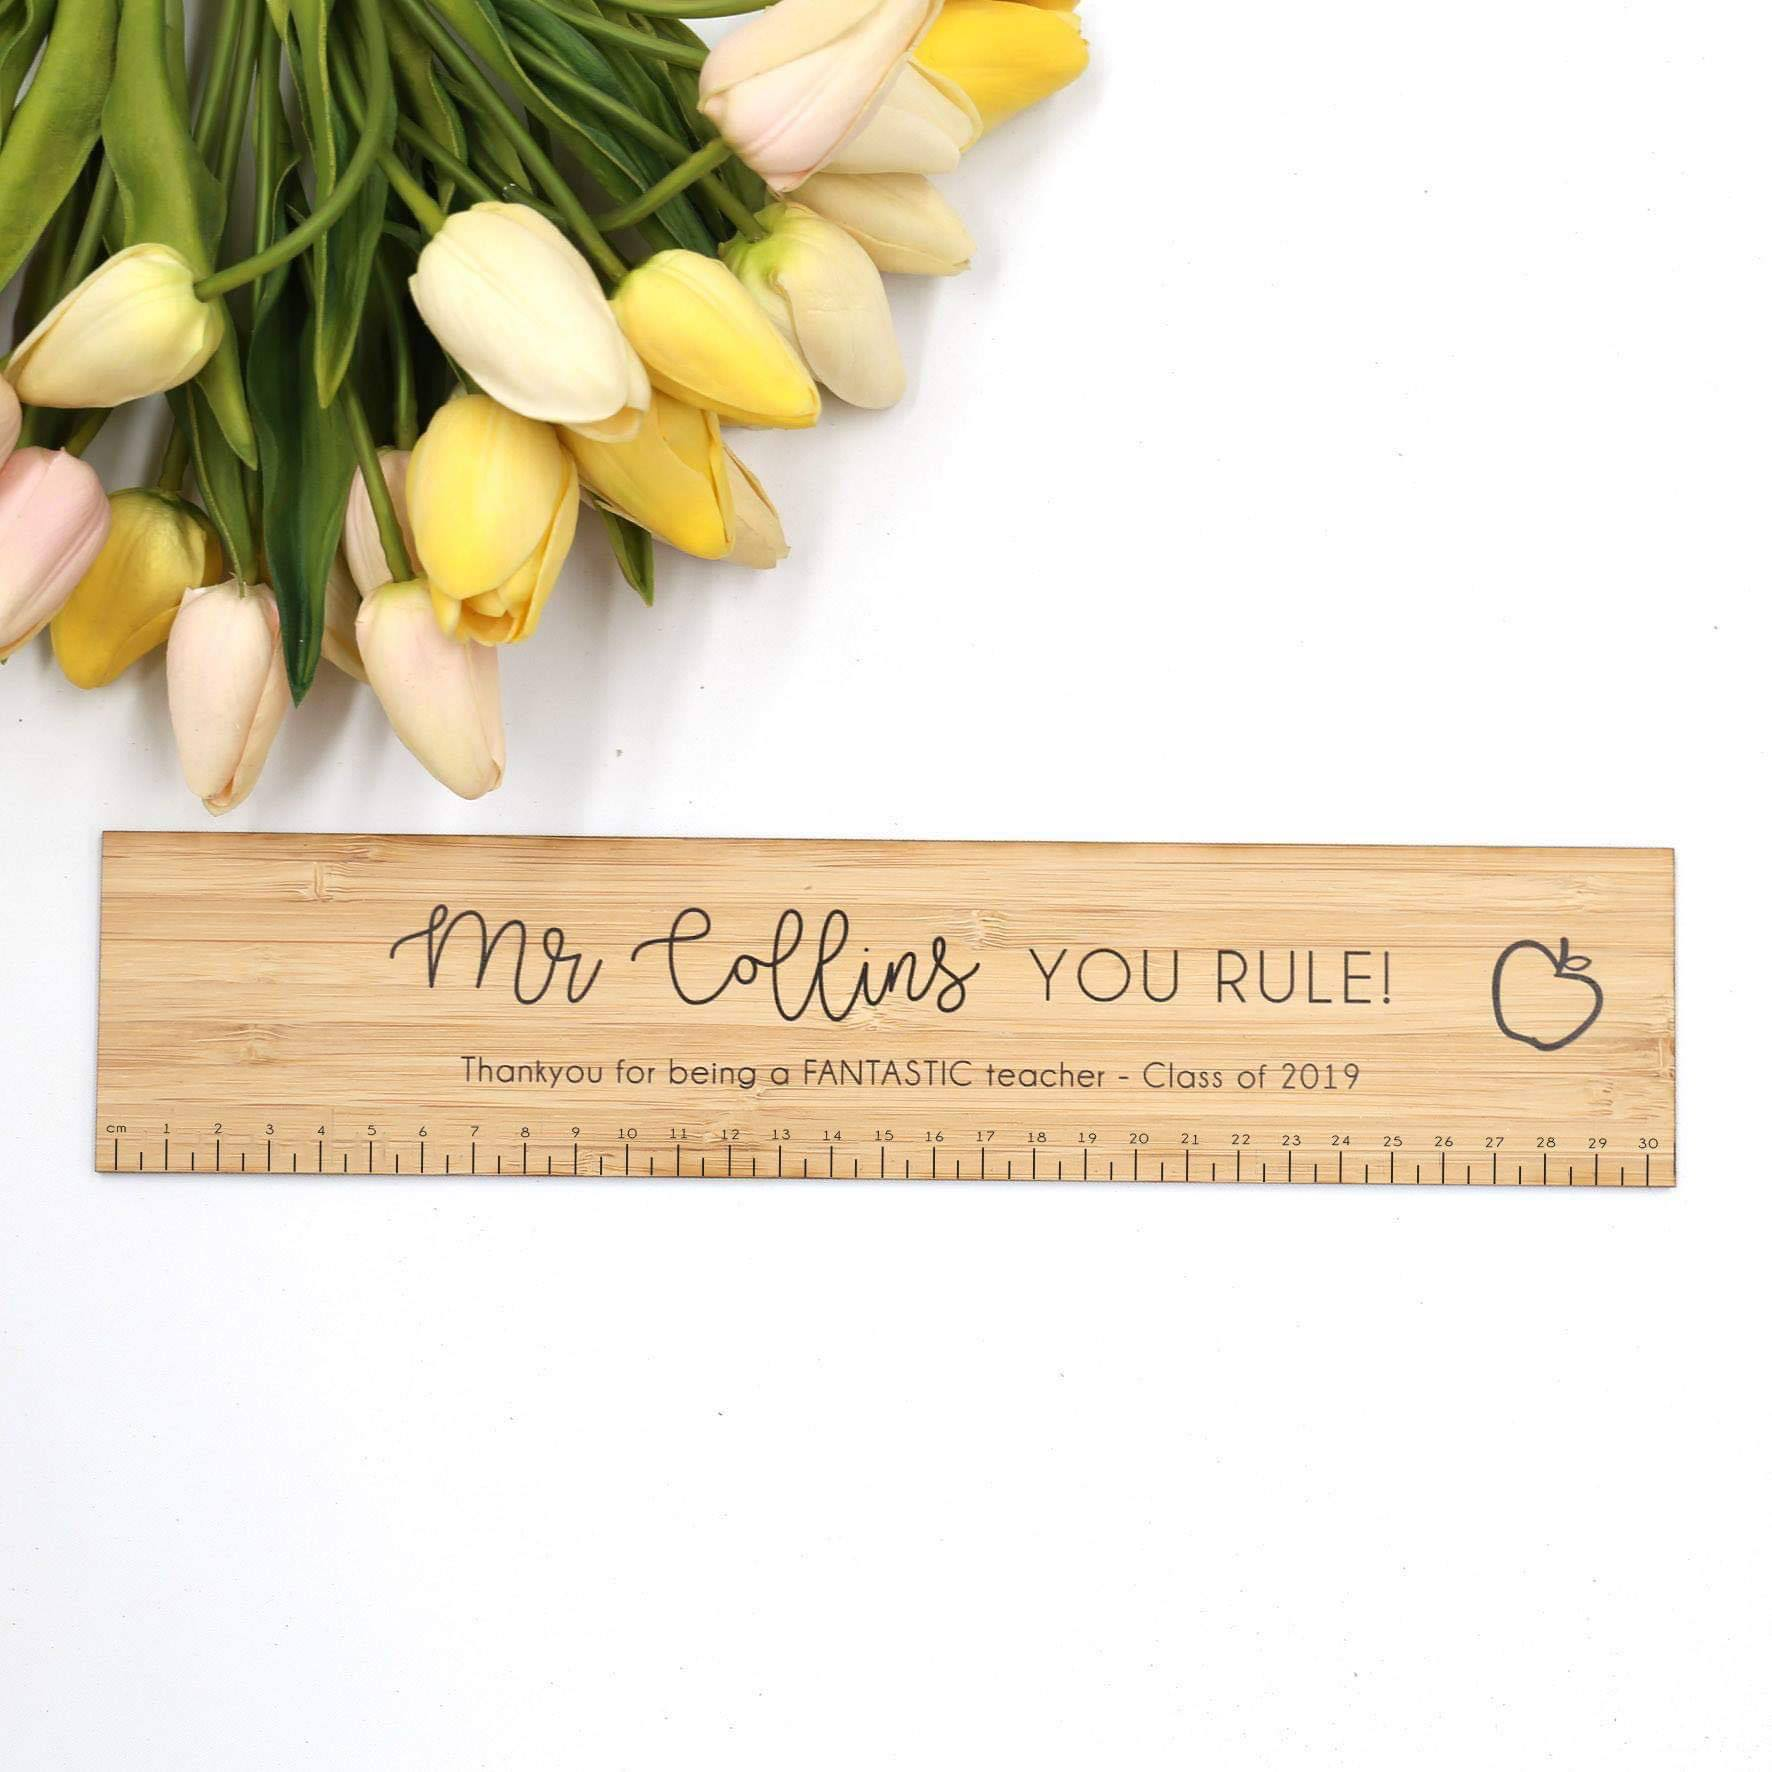 You Rule! Ruler-Teacher's Gifts-CMC Gold